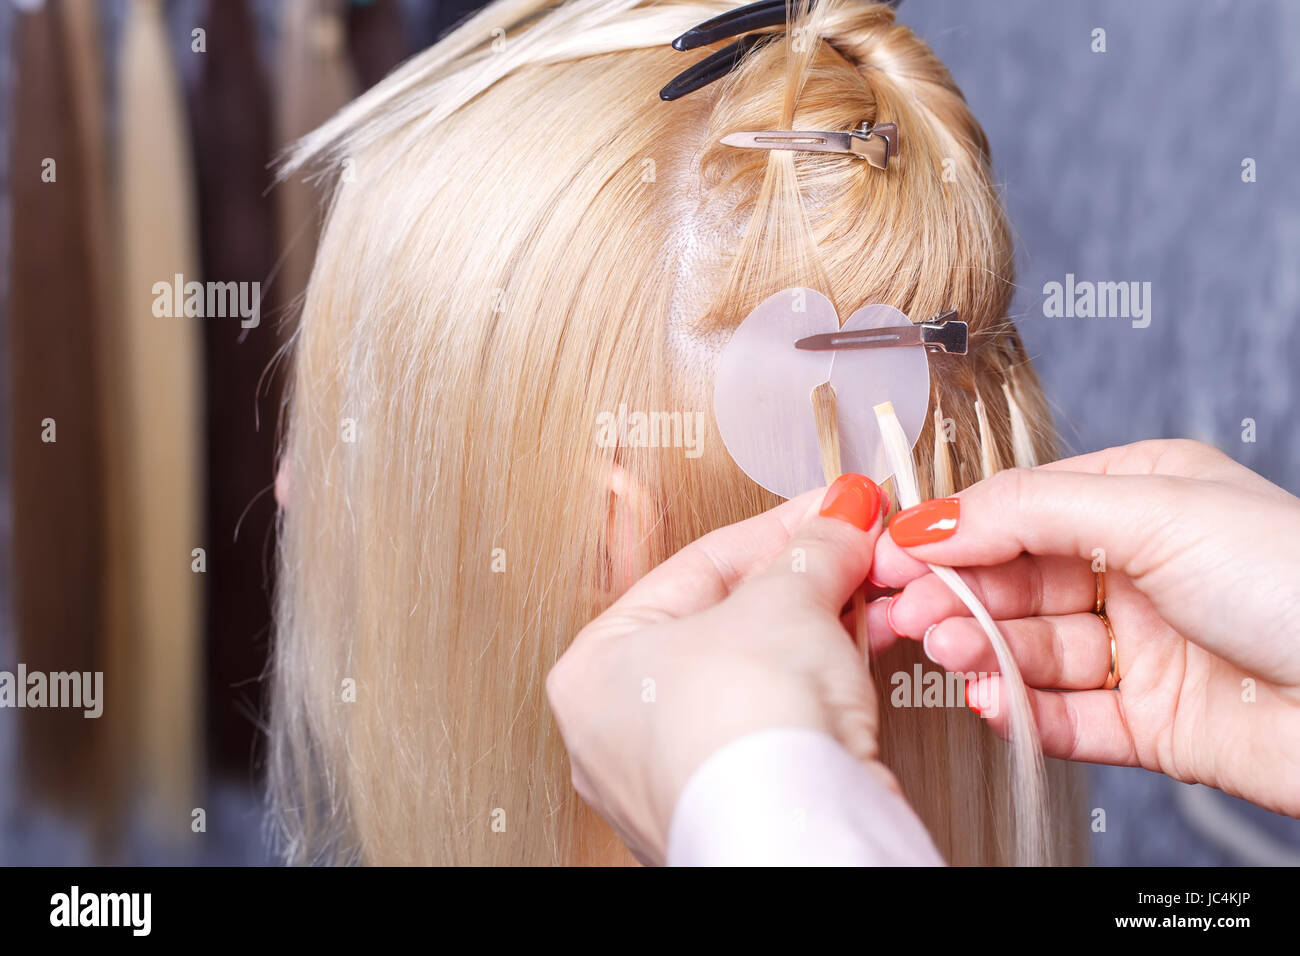 Hair extensions procedure hairdresser does hair extensions to hair extensions procedure hairdresser does hair extensions to young girl blonde in a beauty salon selective focus pmusecretfo Image collections